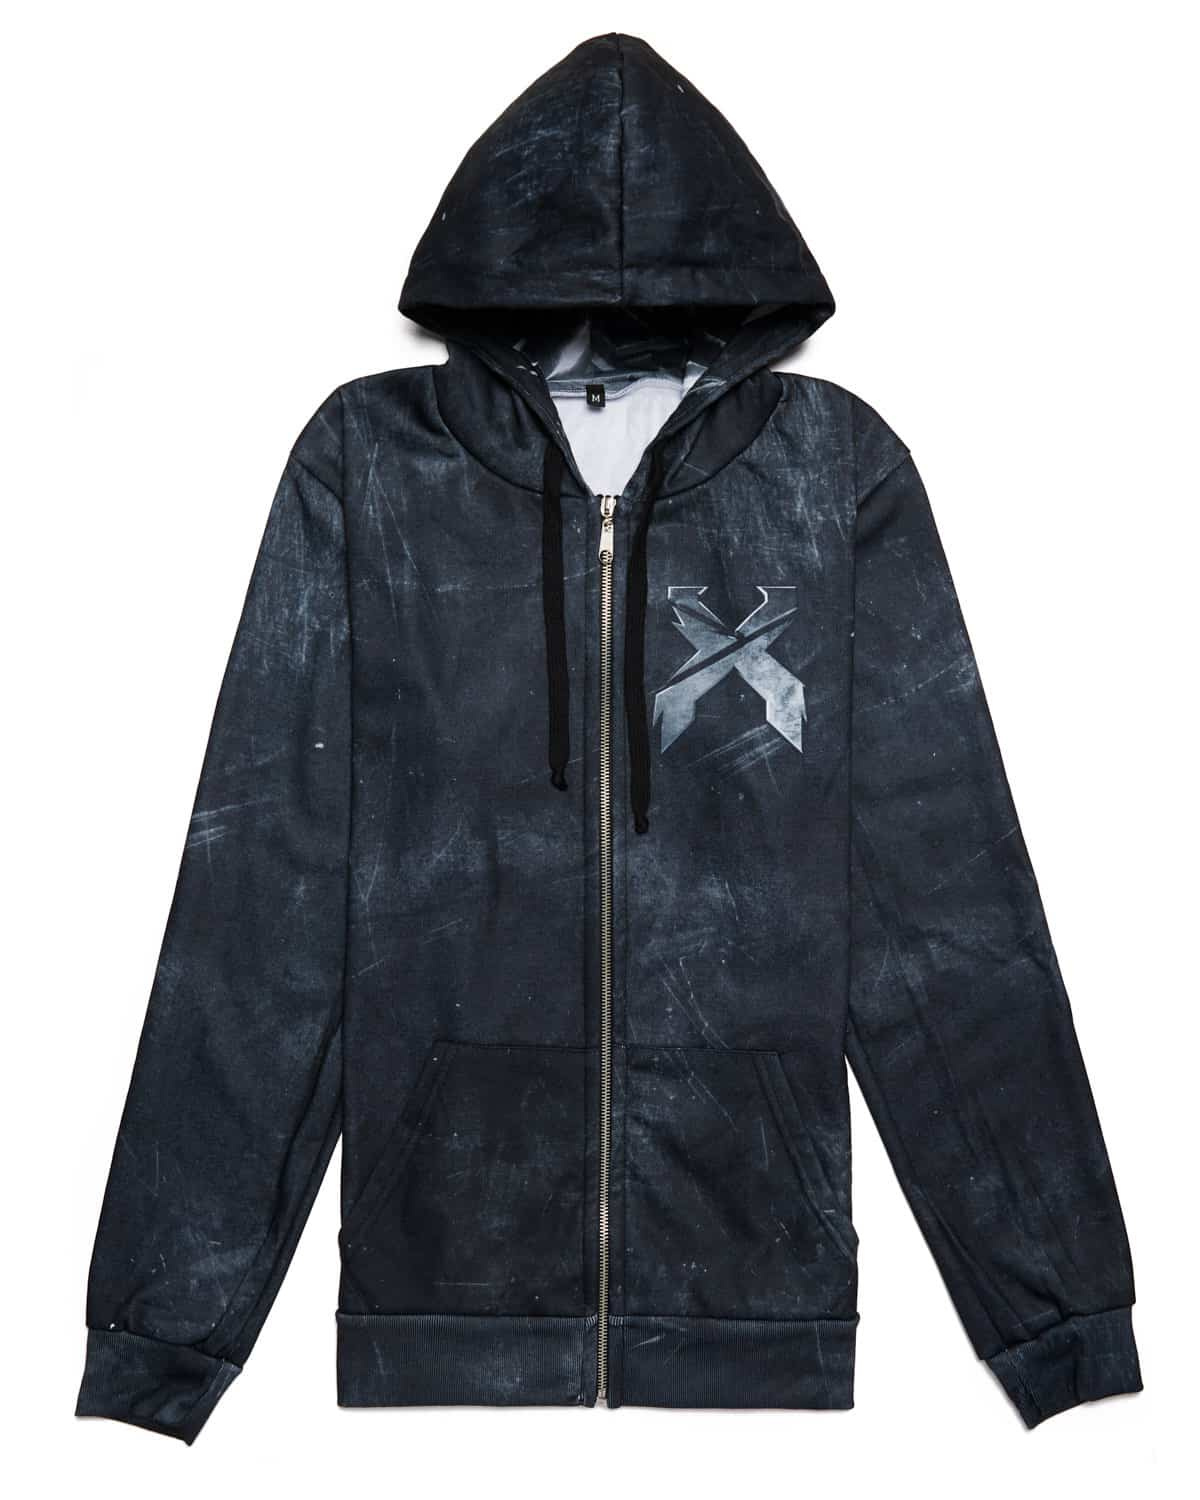 Excision 'Decepticon' Full-Zip Hoodie - Onyx